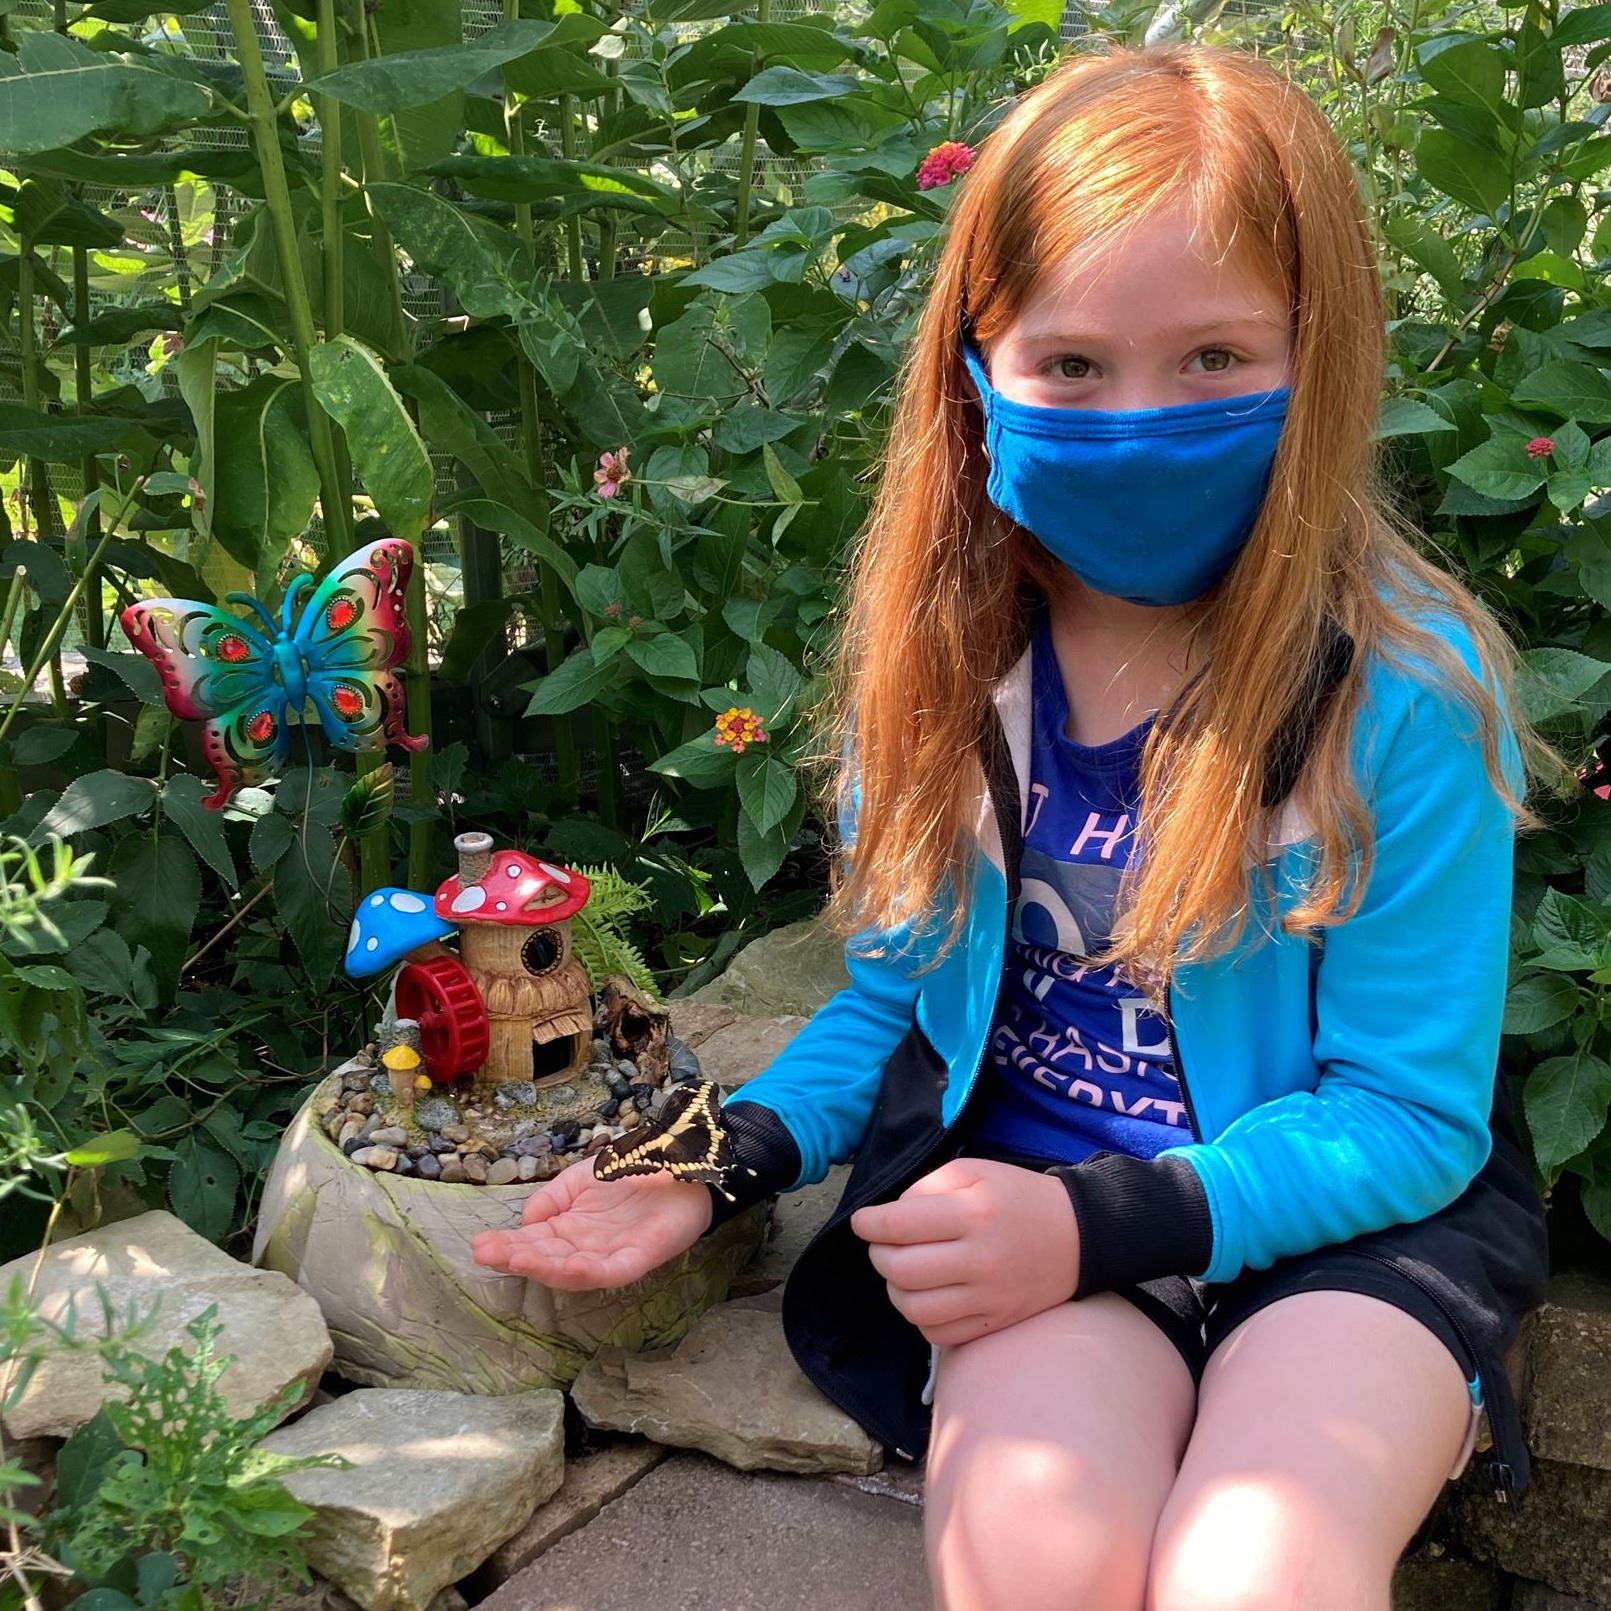 Alaynna, age 8, in the Butterfly House Aug 23, 2020